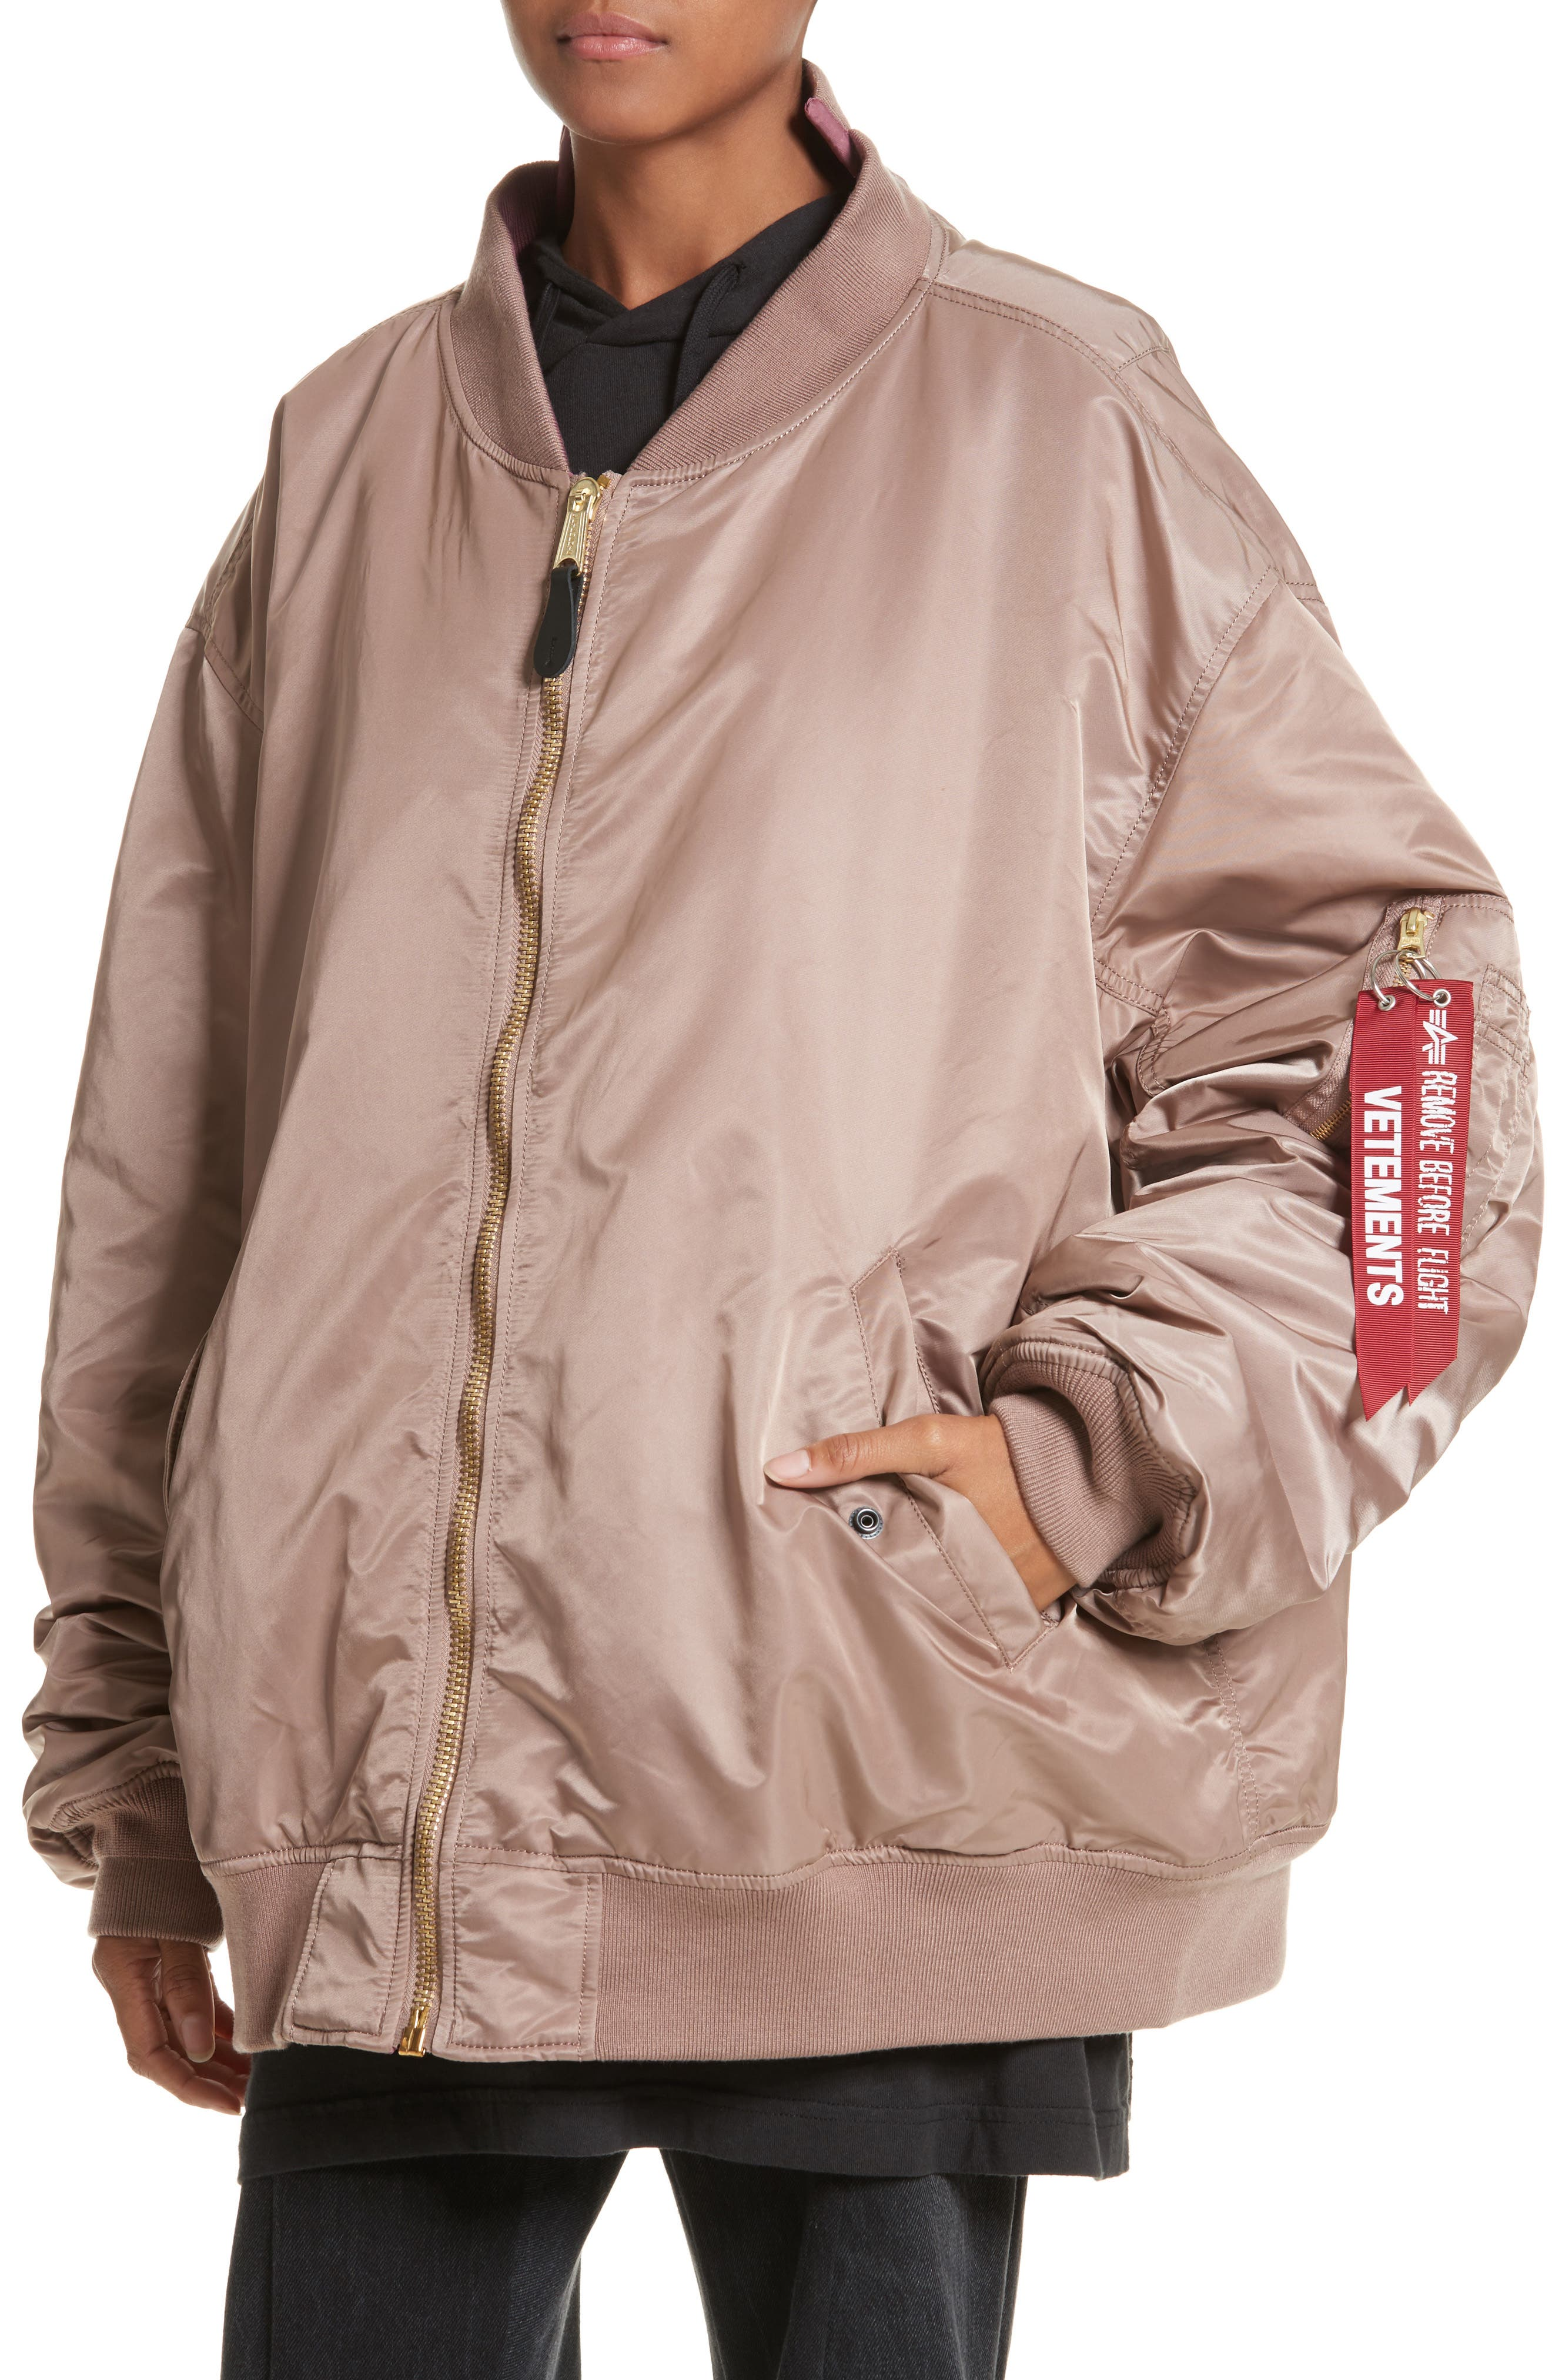 x Alpha Industries Reversible Bomber Jacket,                             Alternate thumbnail 4, color,                             Rose Pink